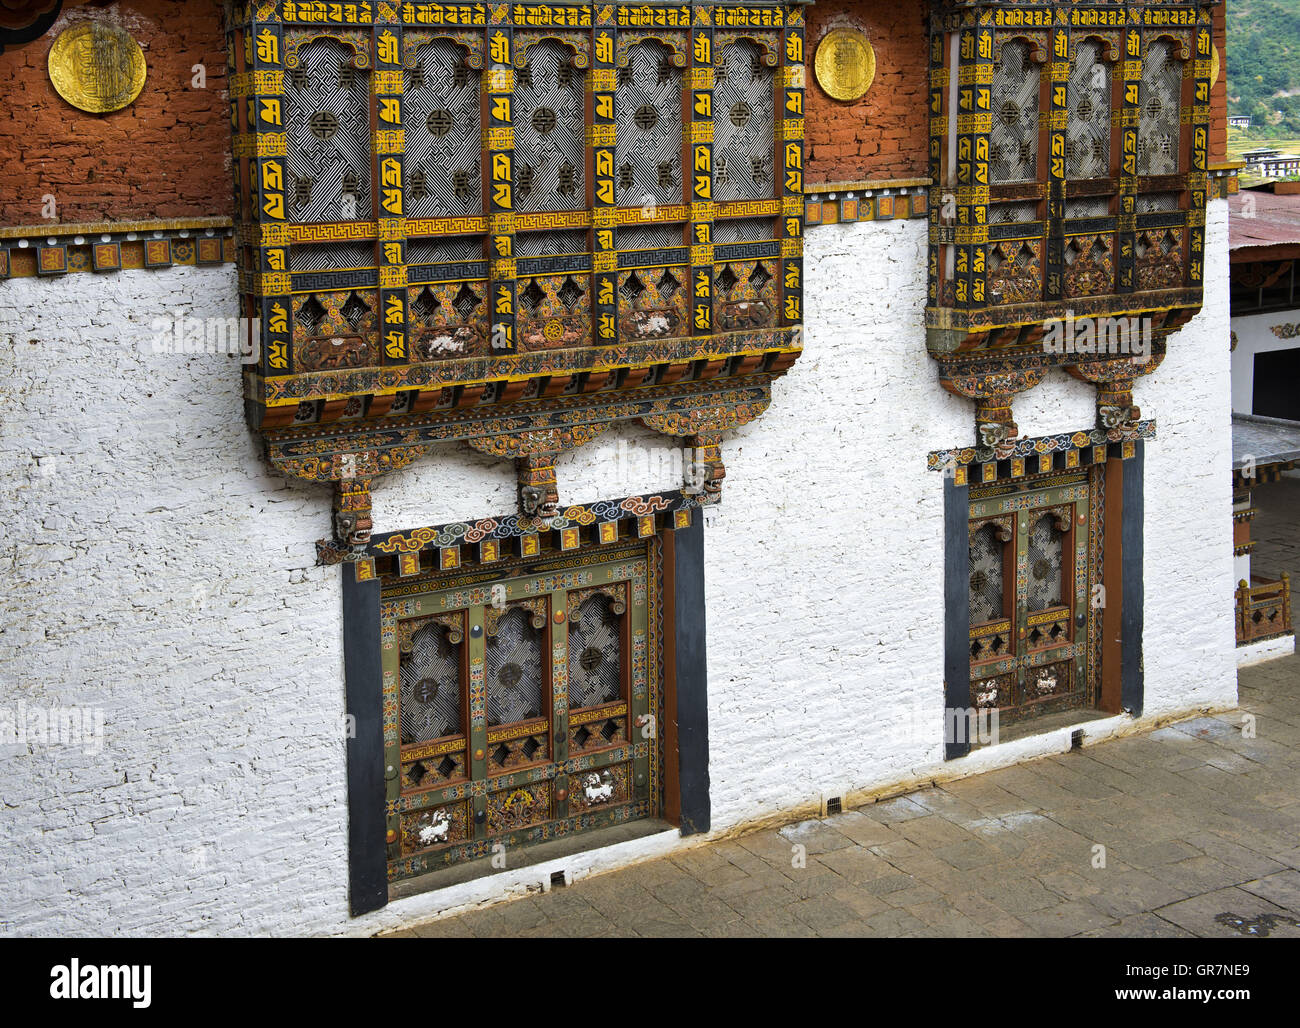 Ornated Windows And Bay Windows In The Monastery And Fortress Punakha Dzong, Punakah, Bhutan - Stock Image